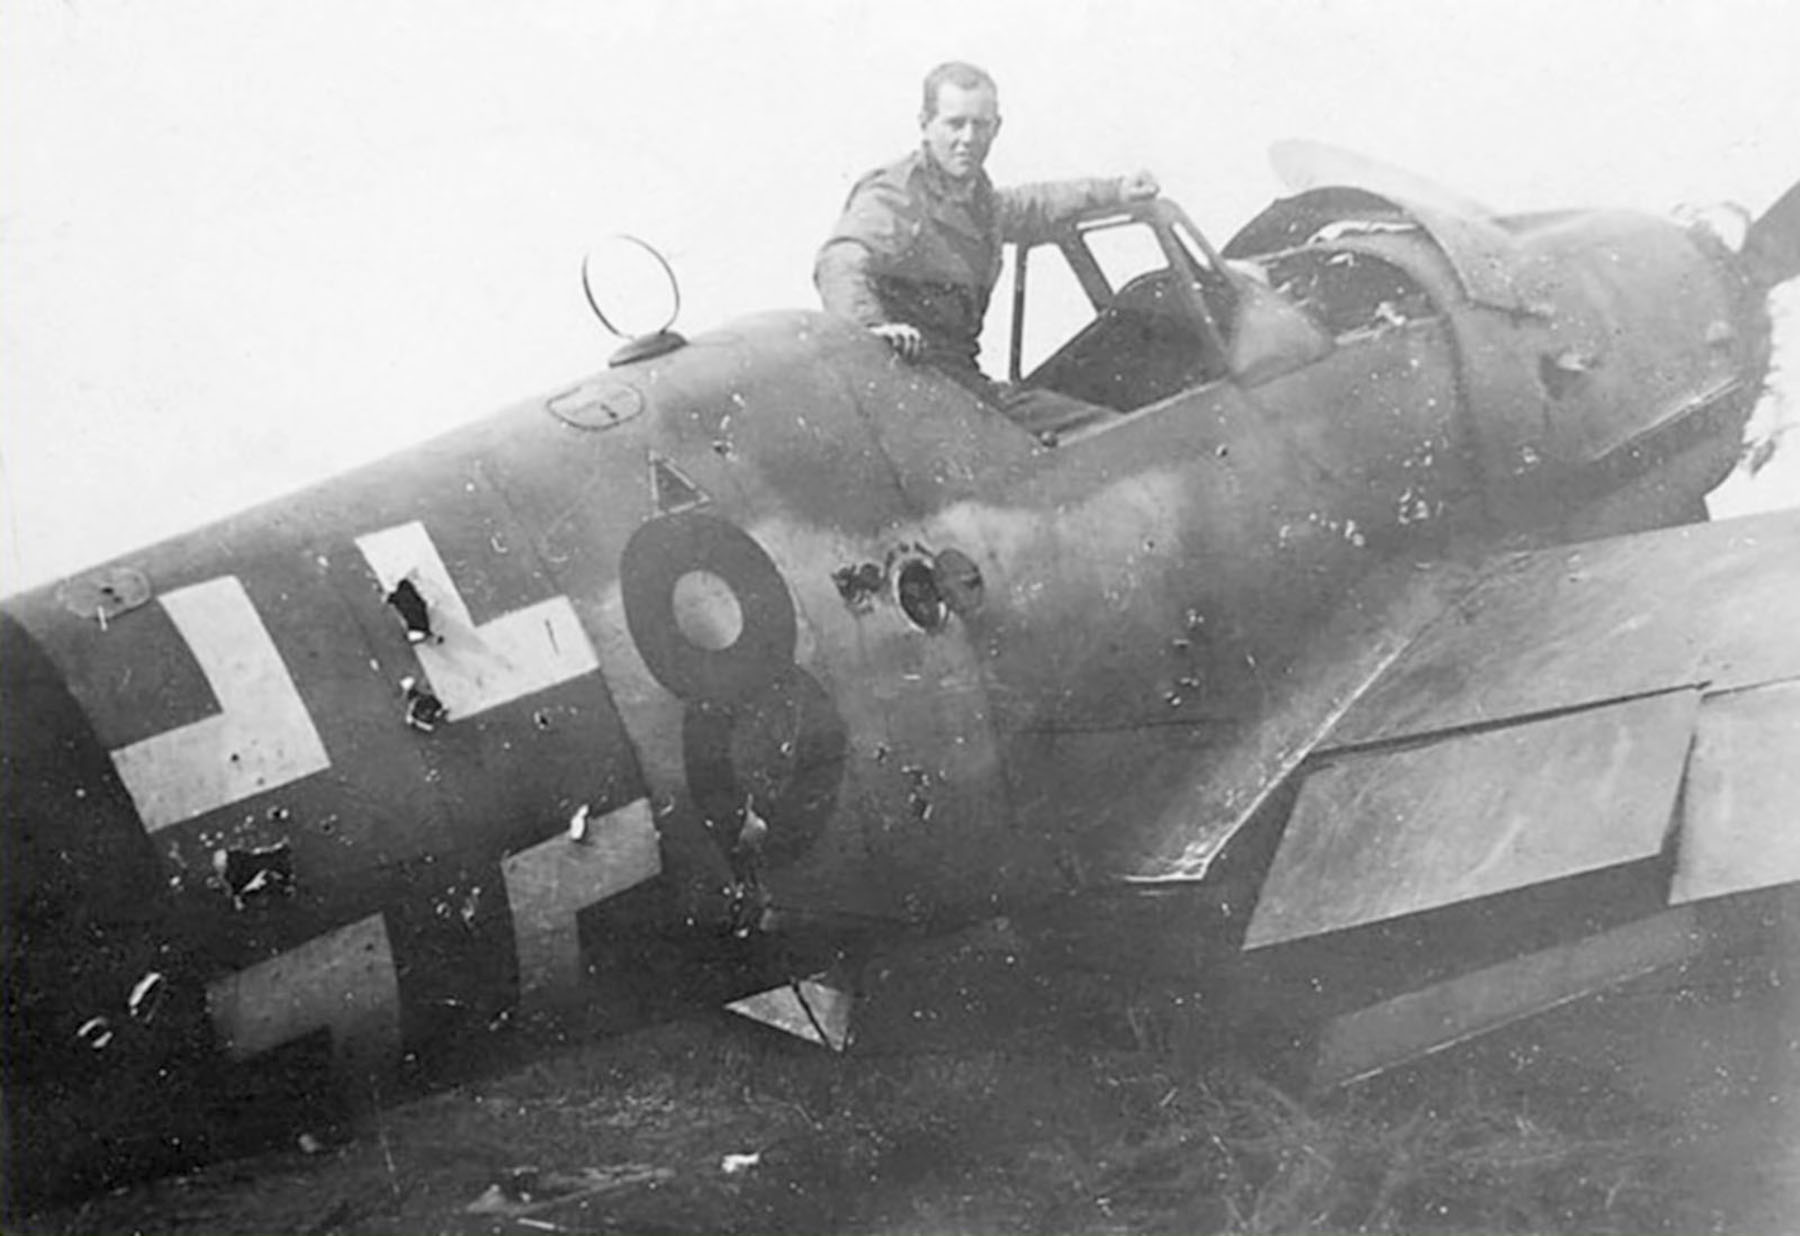 Messerschmitt Bf 109G14AS Erla RVT Yellow 8 WNr 783906 unknown unit lies abandoned Ensfeld Austria April 1945 02